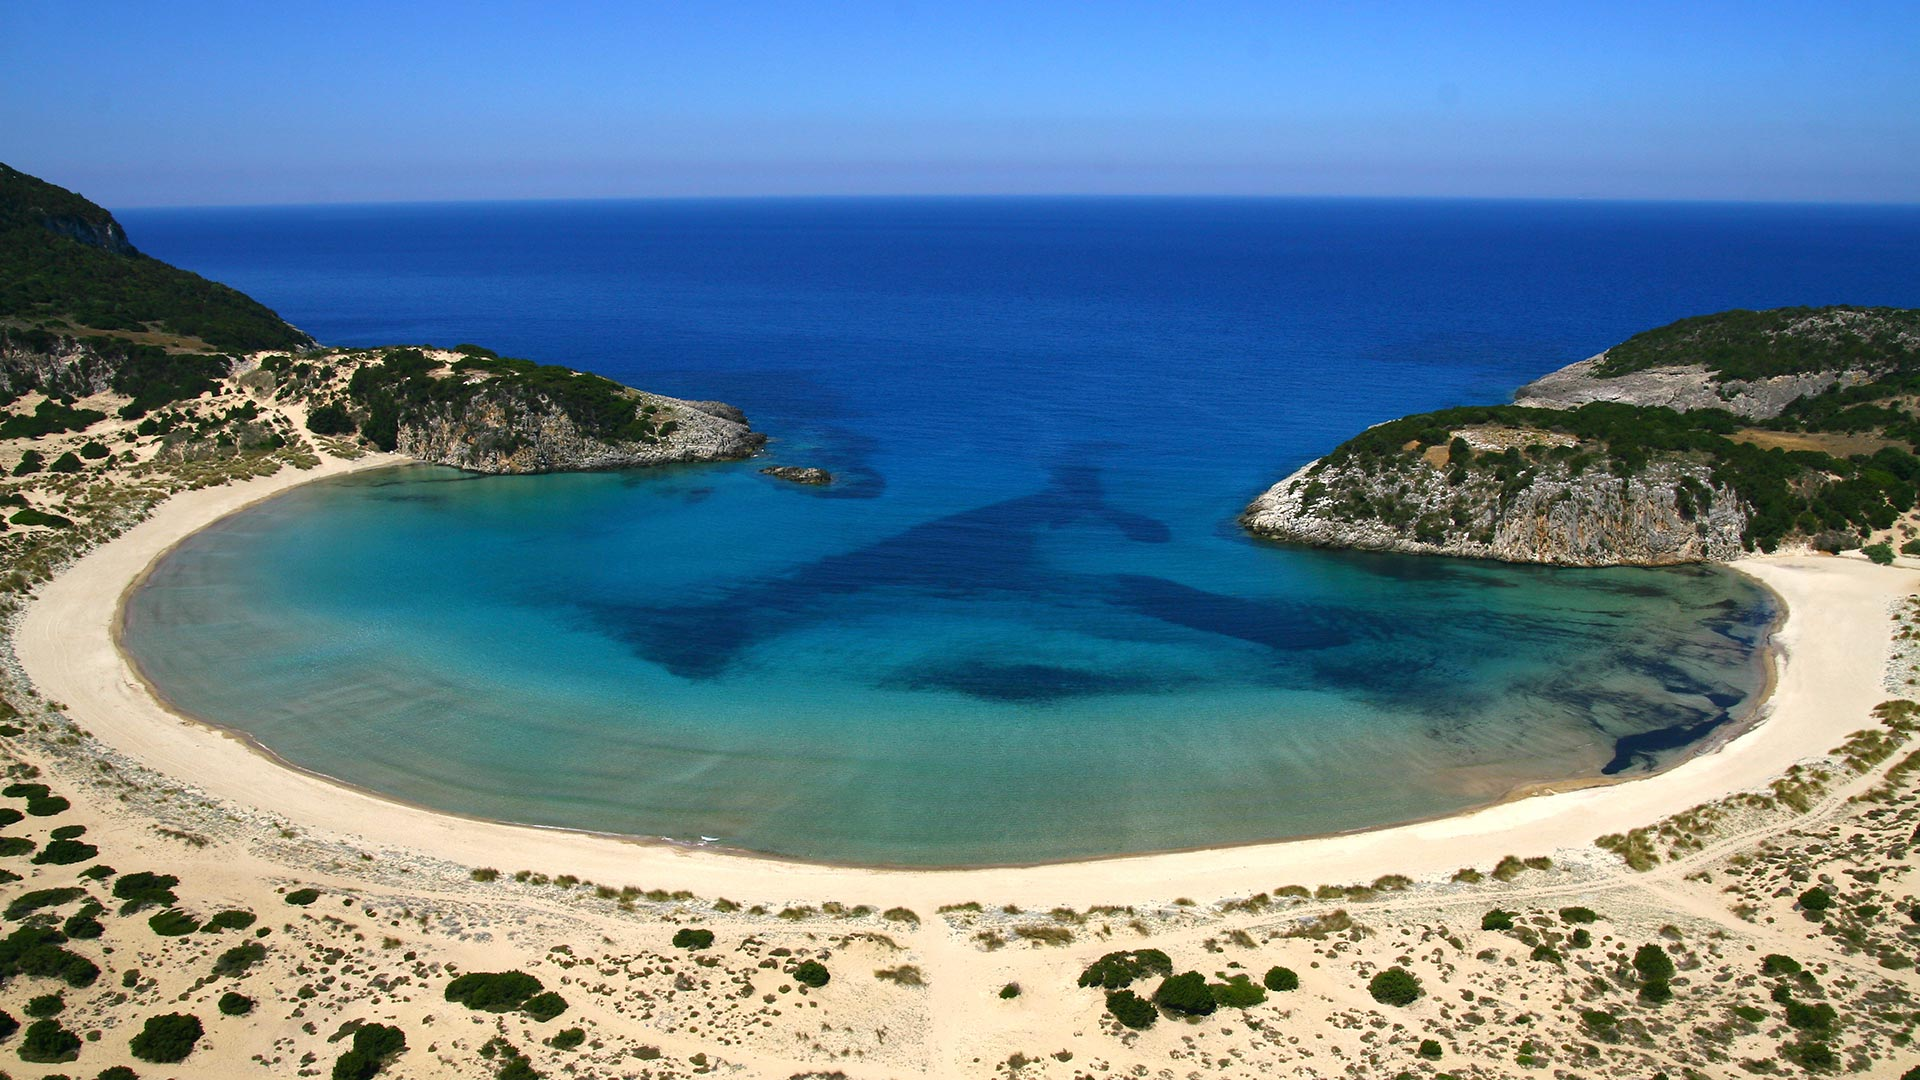 Pylos, Greece - Monterrasol small group tours to Pylos, Greece. Travel agency offers small group car tours to see Pylos in Greece. Order small group tour to Pylos with departure date on request.